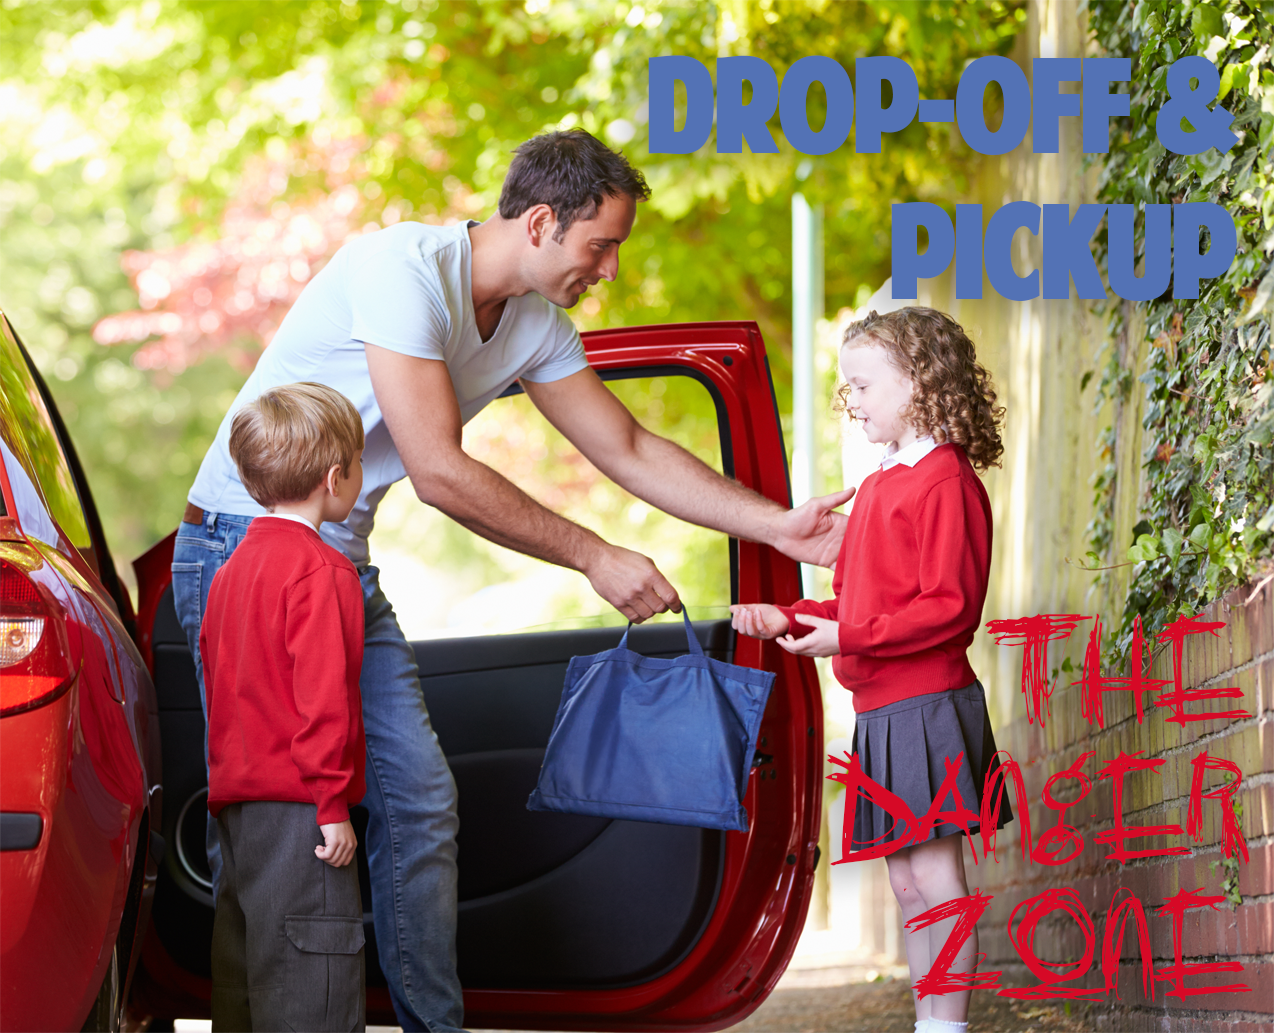 School Drop-off and Pick up: The Danger Zone